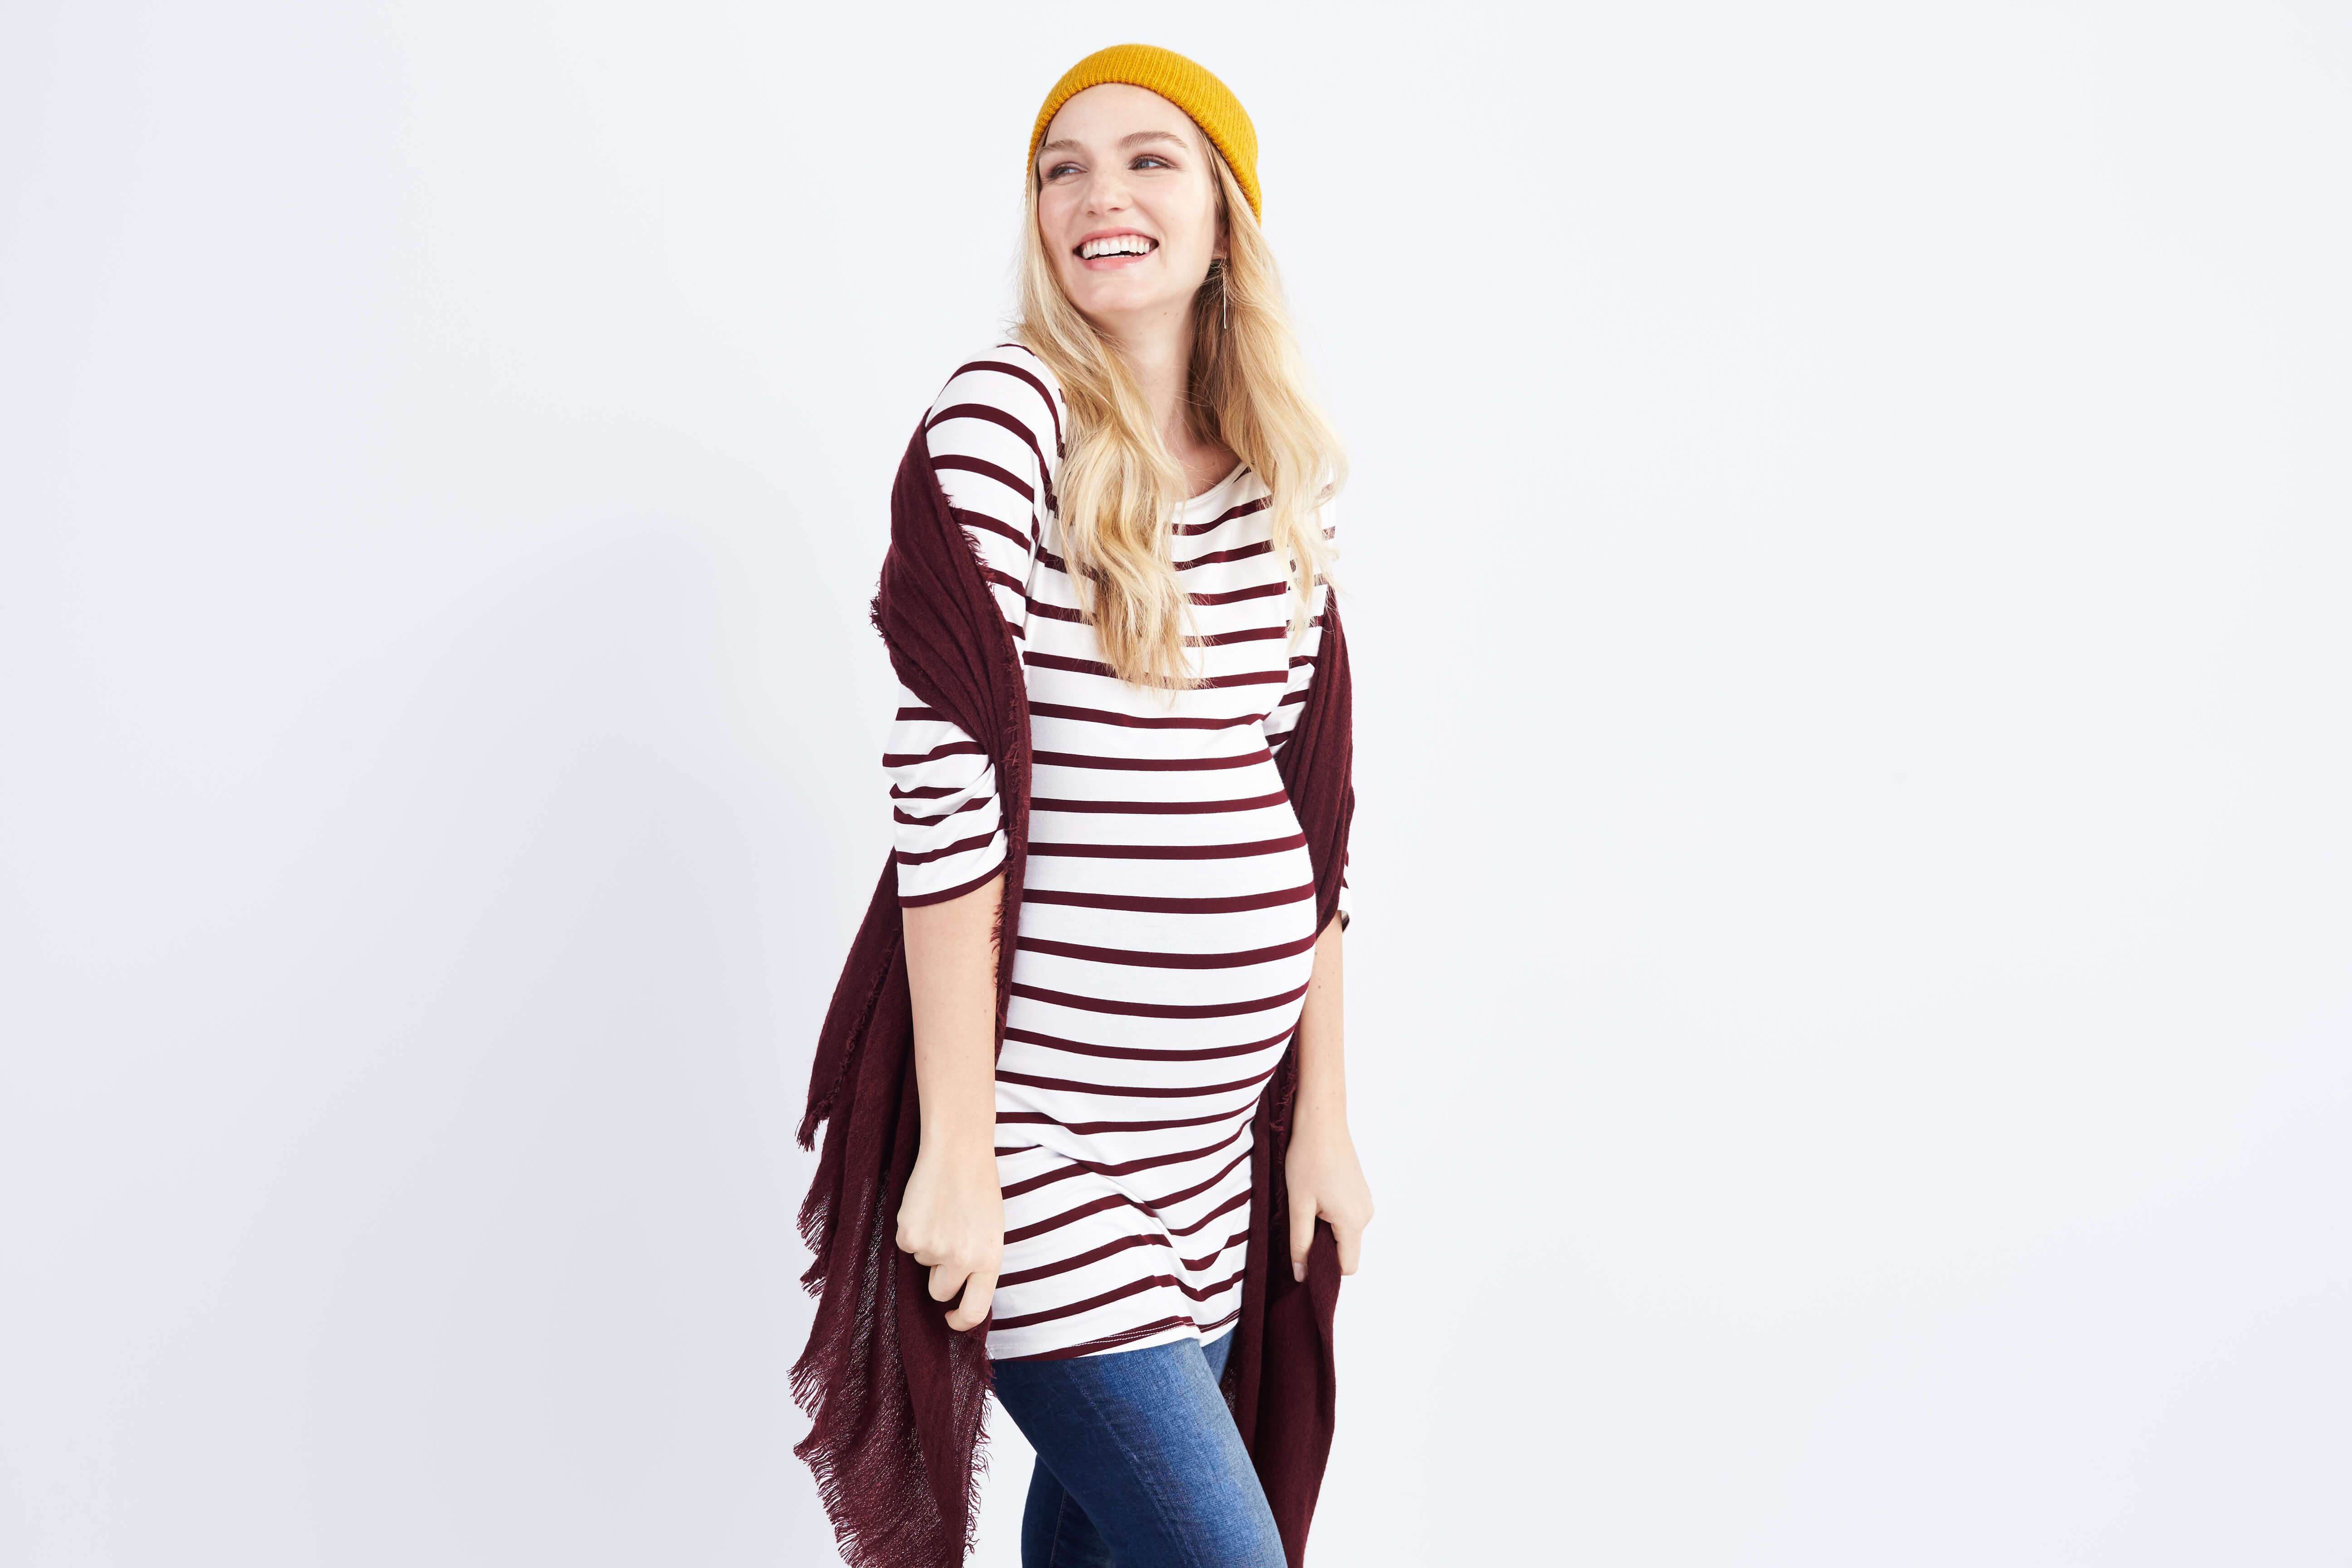 e126c6f6af74 10 Maternity Style Tips To Maximize Your Wardrobe